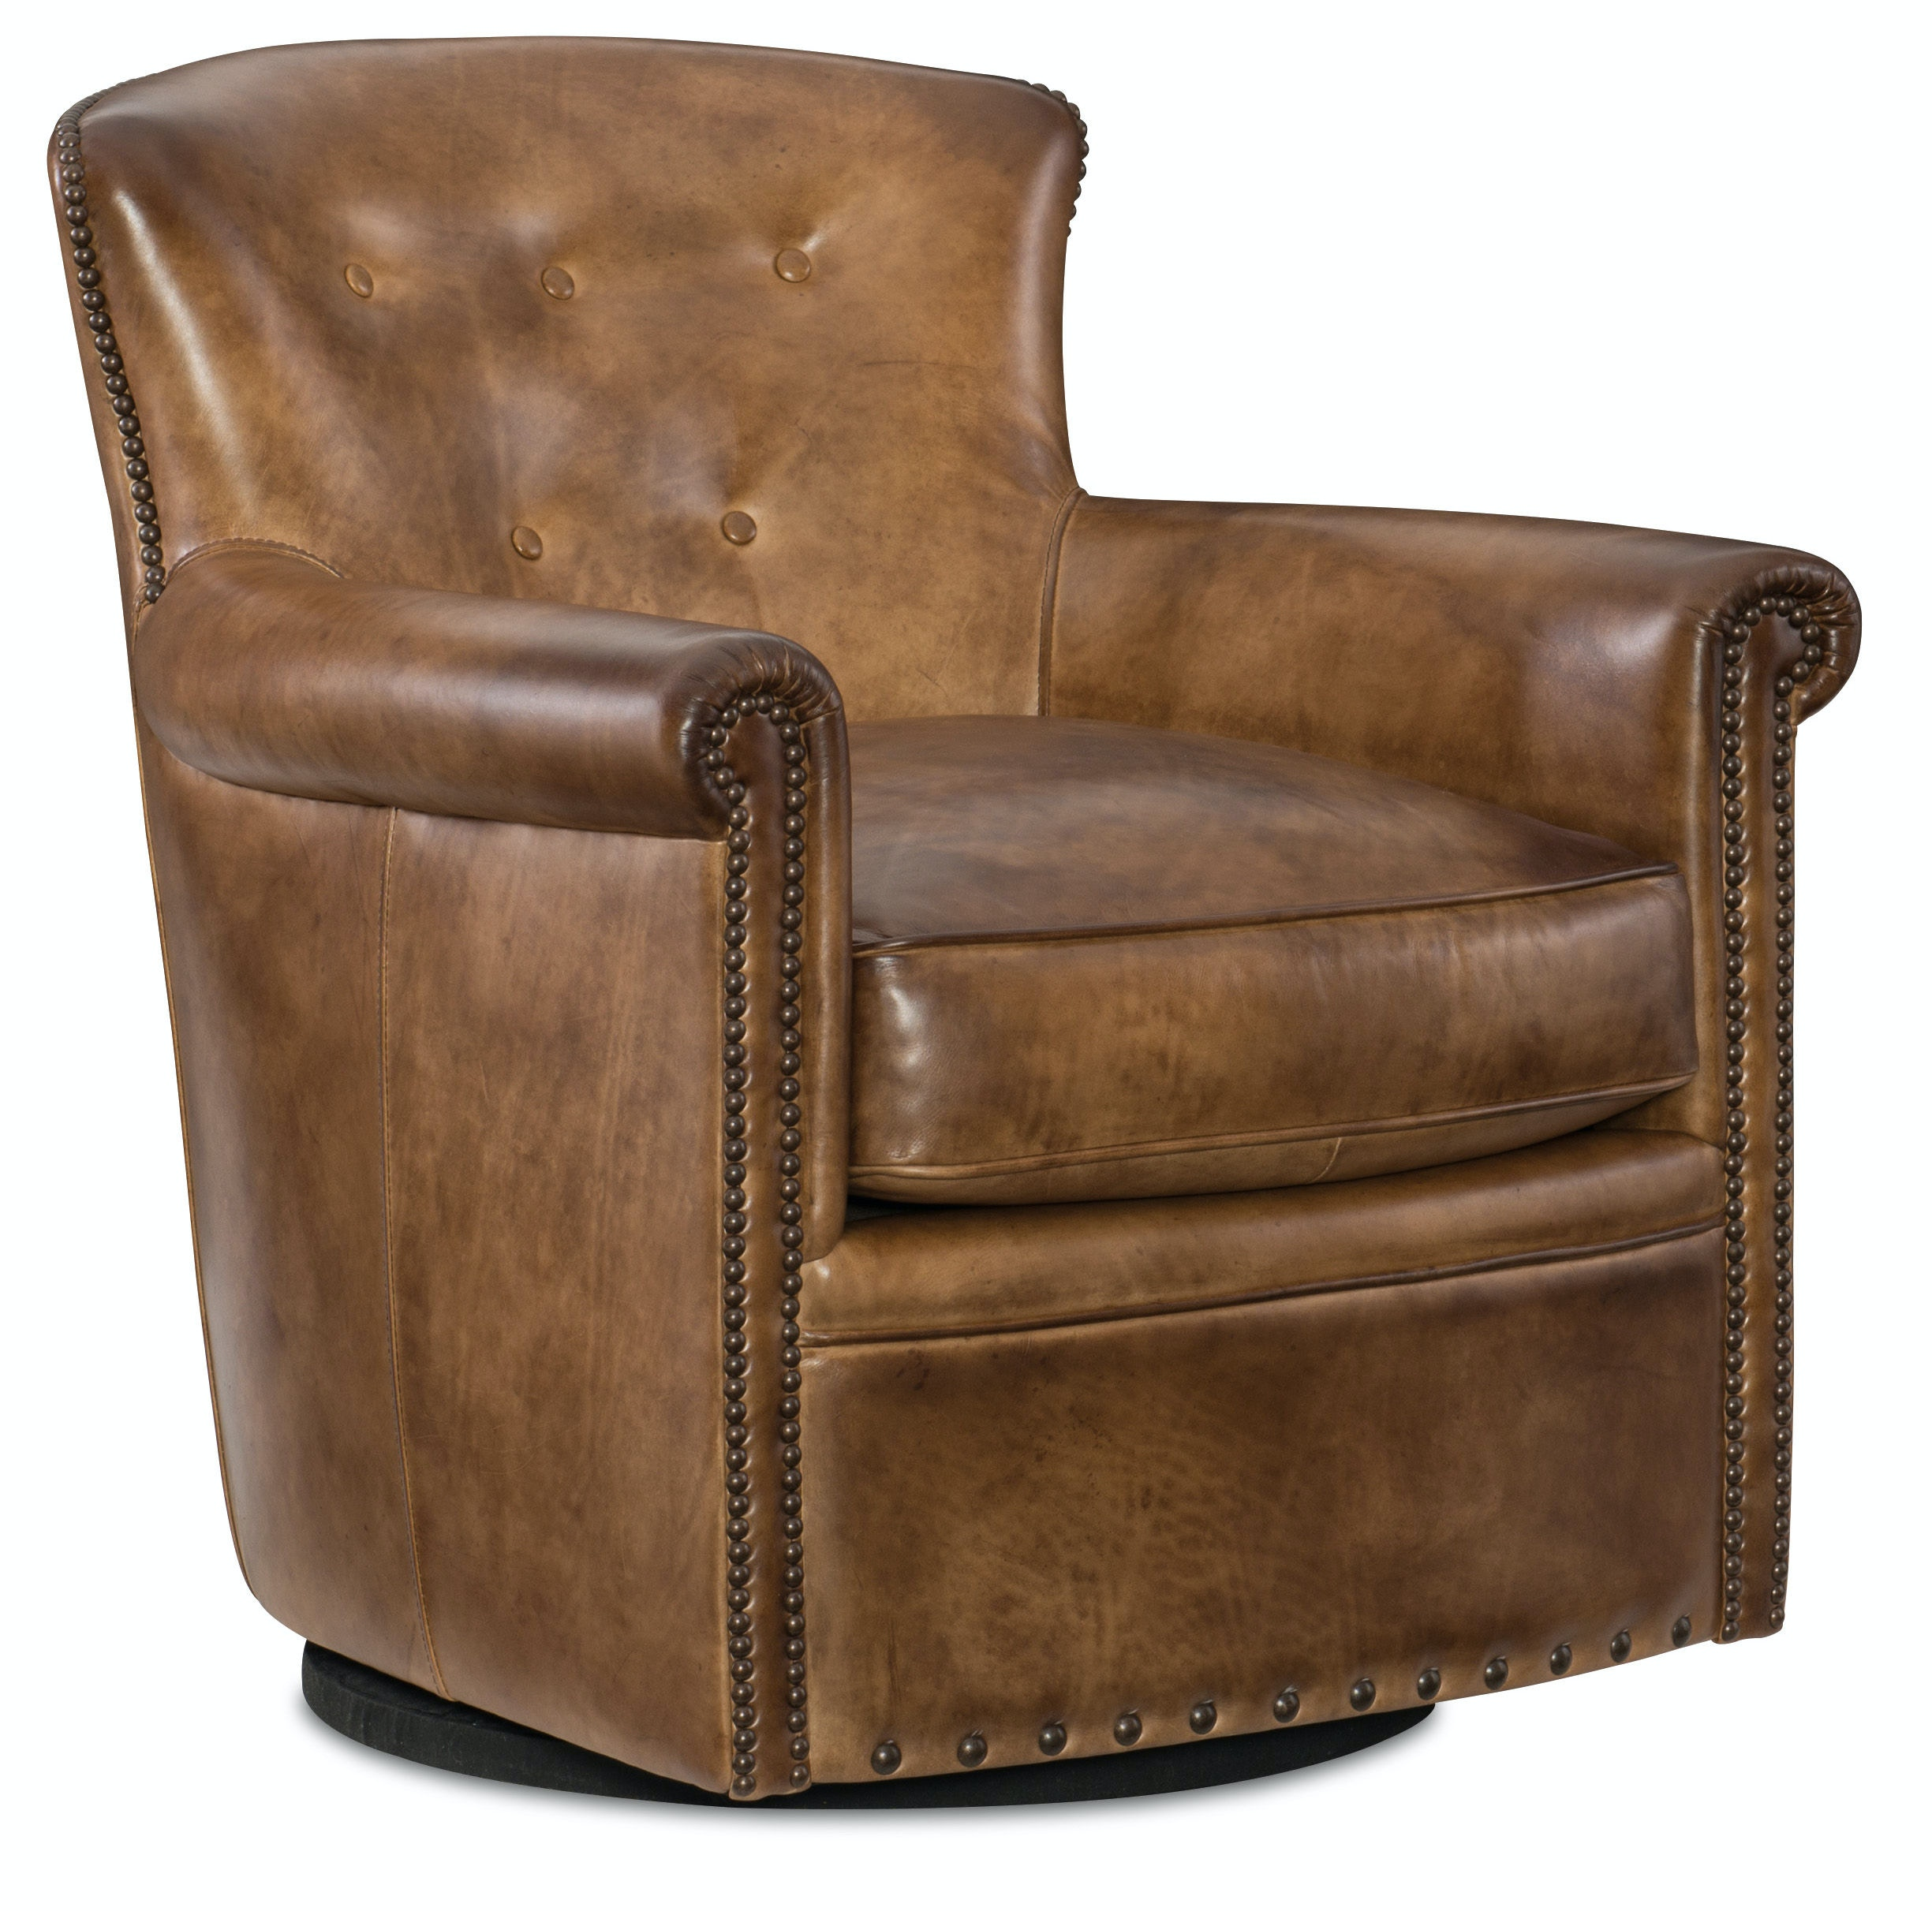 swivel club chair recliner office chairs for big and tall hooker furniture living room jacob cc510